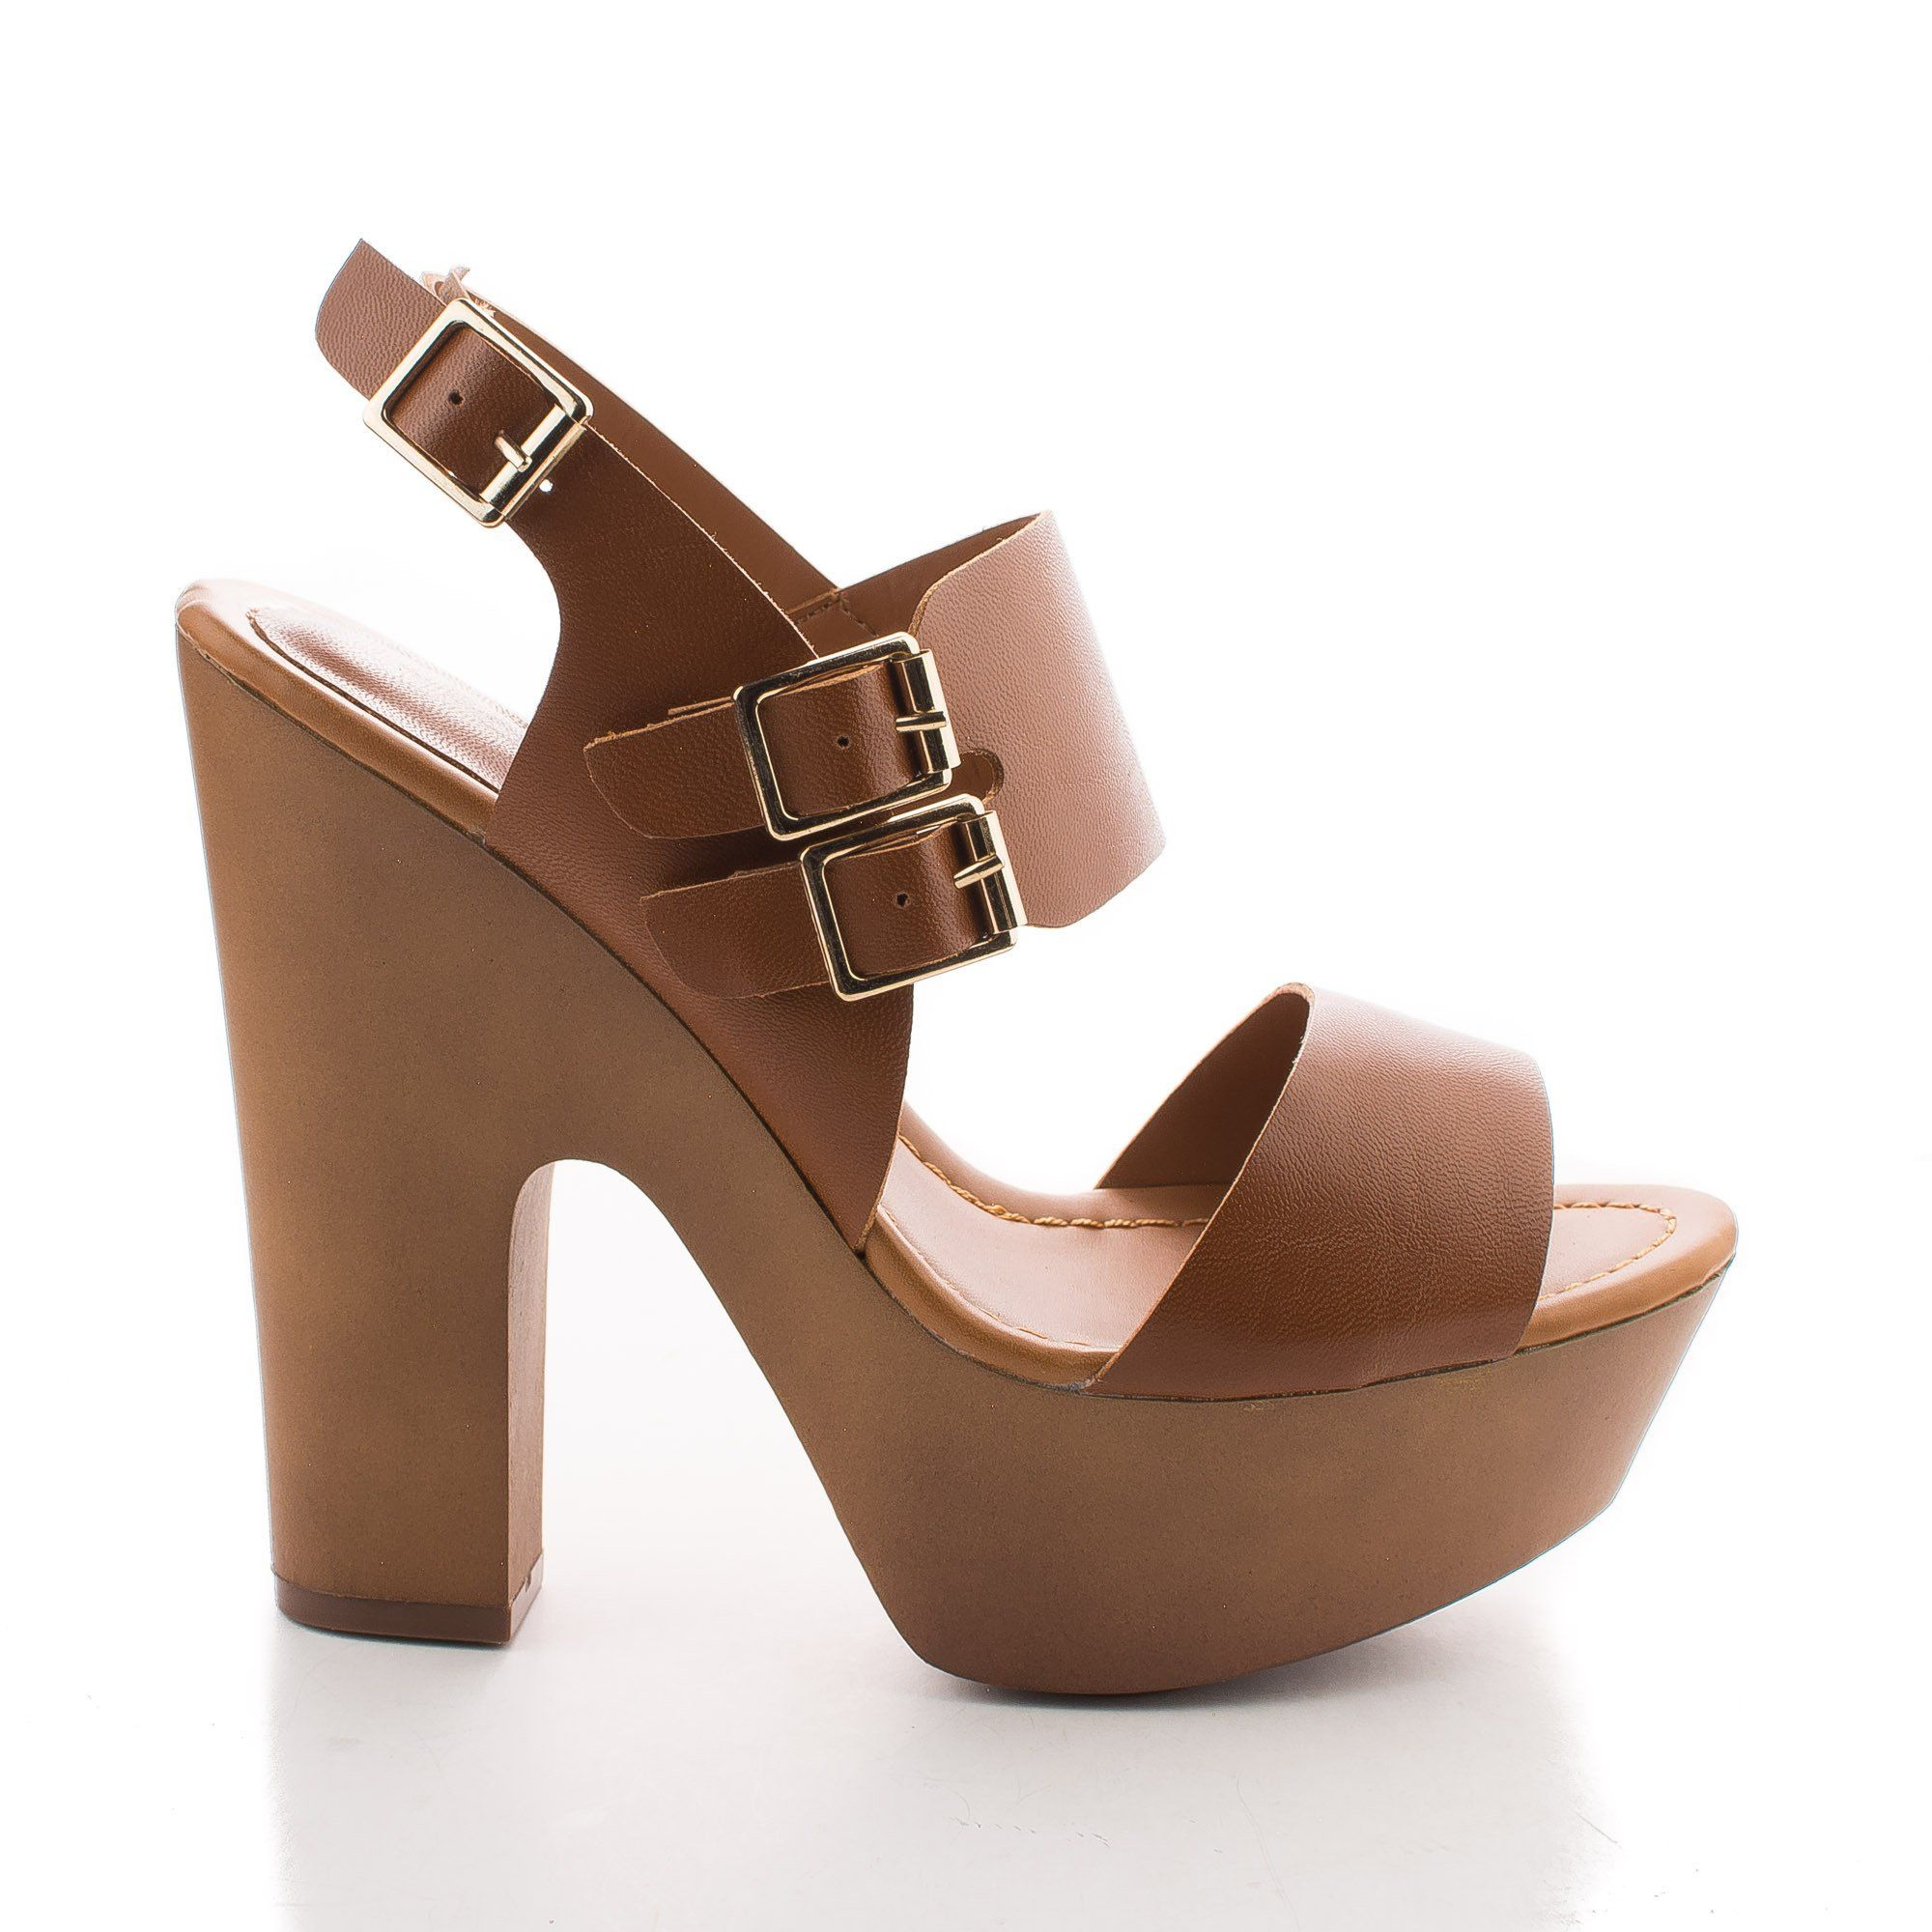 3398527b702 Rudy11 By Breckelle's, Strappy Multi Buckle Faux Wooden Platform ...